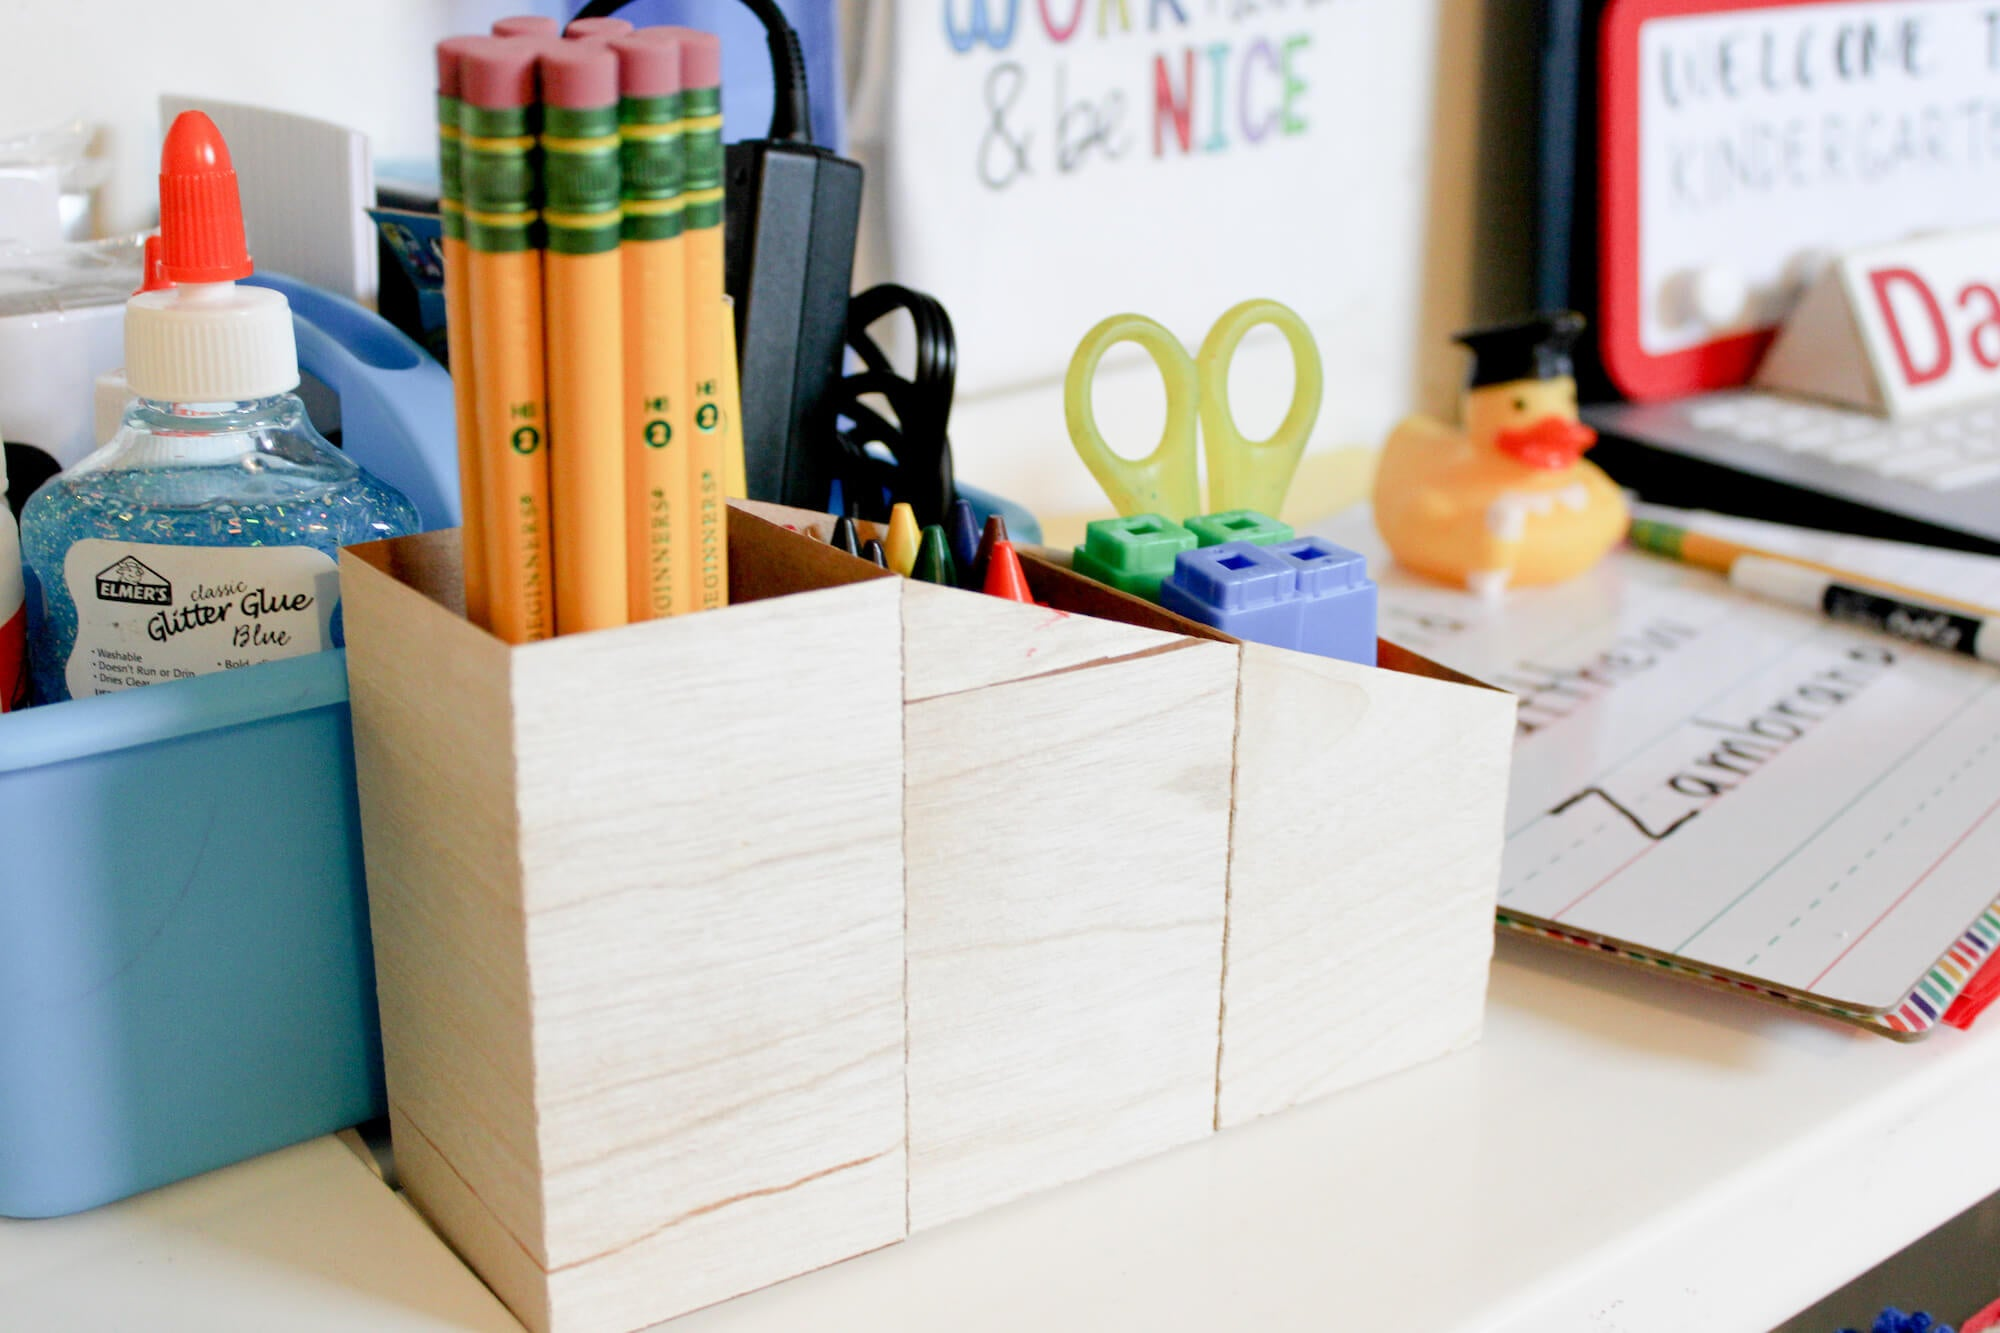 Wood Veneer Paper Pencil Box